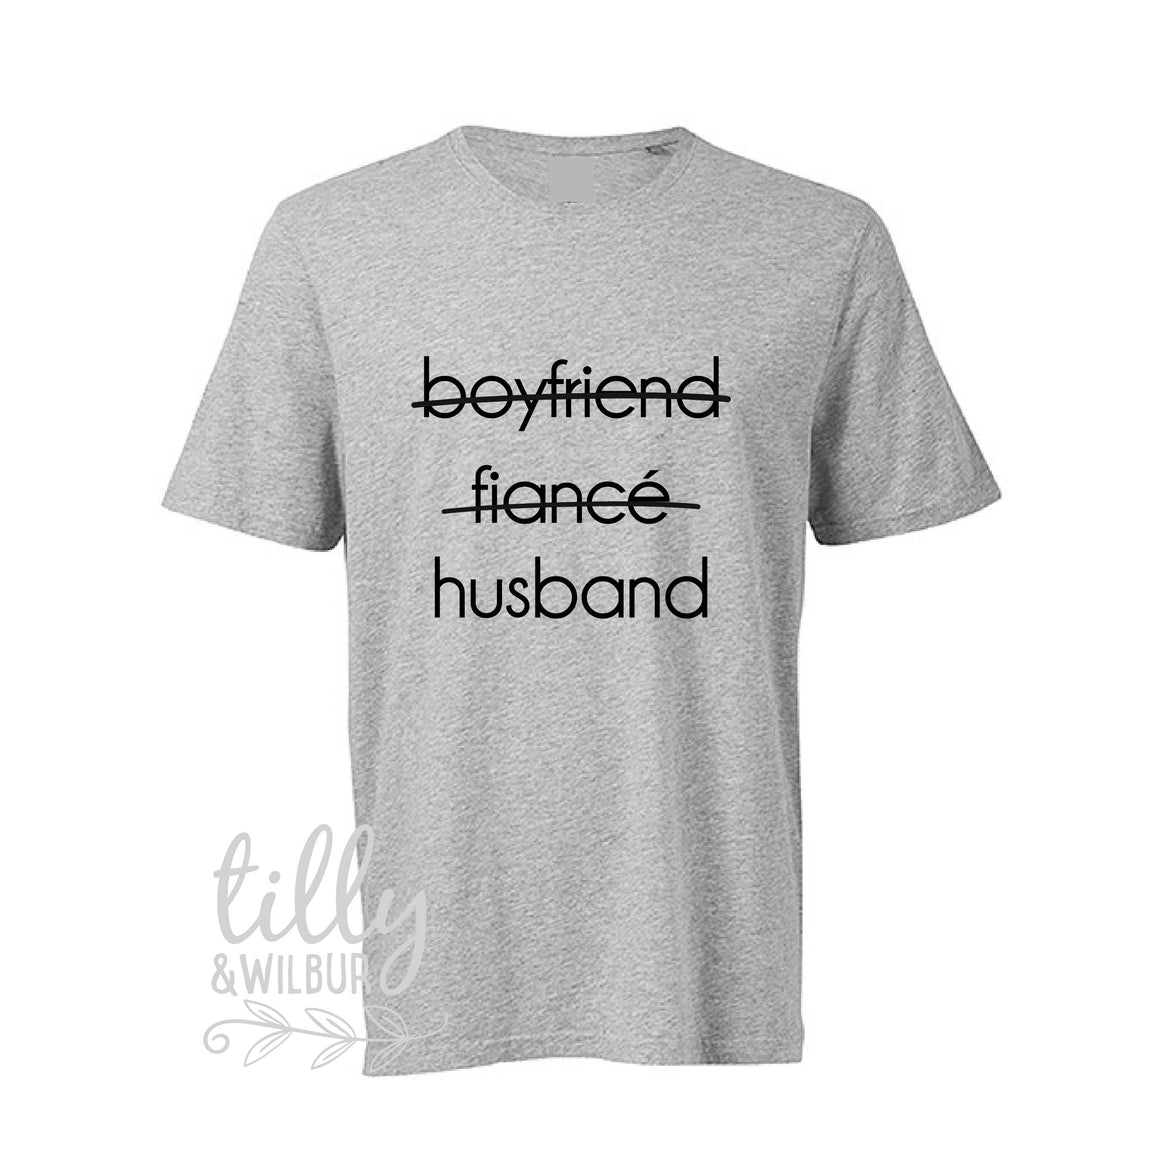 Boyfriend Fiance Husband Men's T-Shirt, Wedding Gift, Wedding Outfit, Engagement, Bucks Party, Husband Gift, Newly Engaged, Just Married